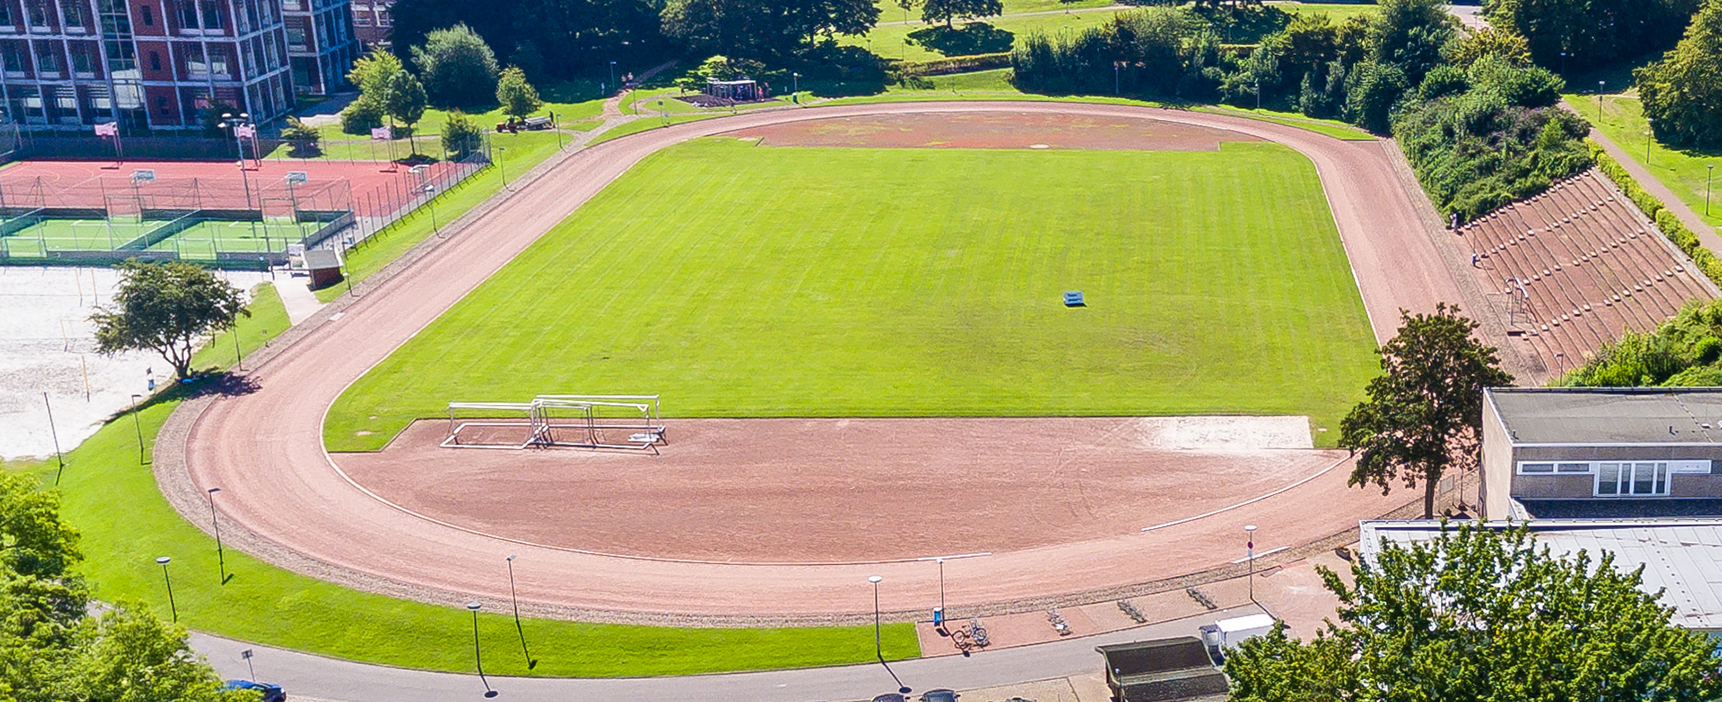 Aerial view of the 400 meter track